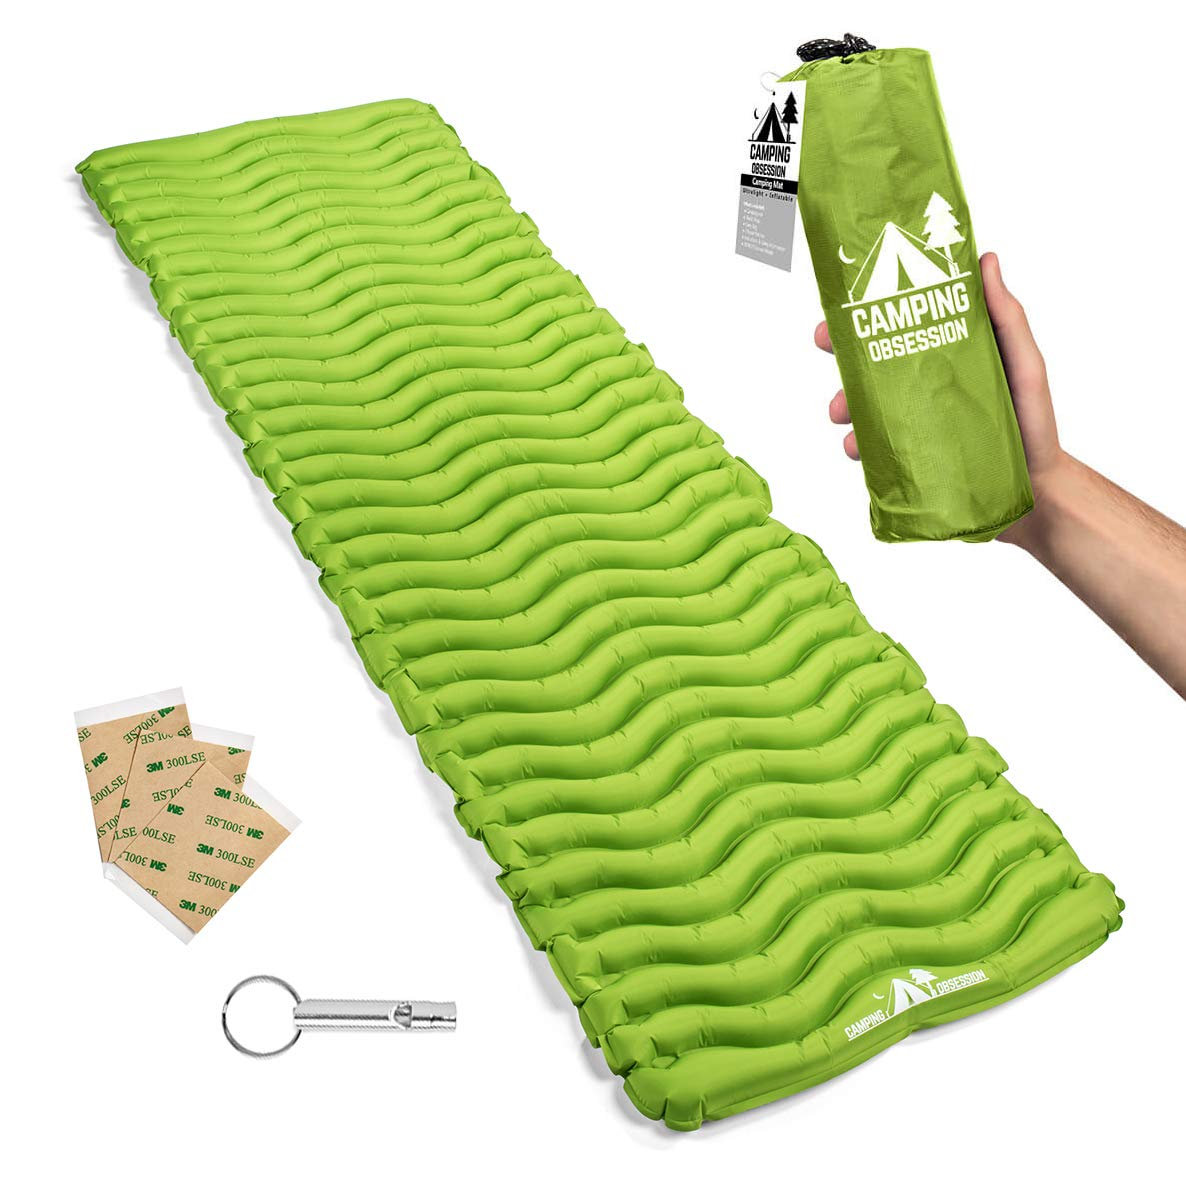 Camping Sleep Mat - Compact & Lightweight Inflatable Sleeping Pad for Backpacking - Ultralight Air Mattress Engineered for Comfort - with 3 Repair Patches and Bonus Survival Whistle (Parakeet Green) by Camping Obsession